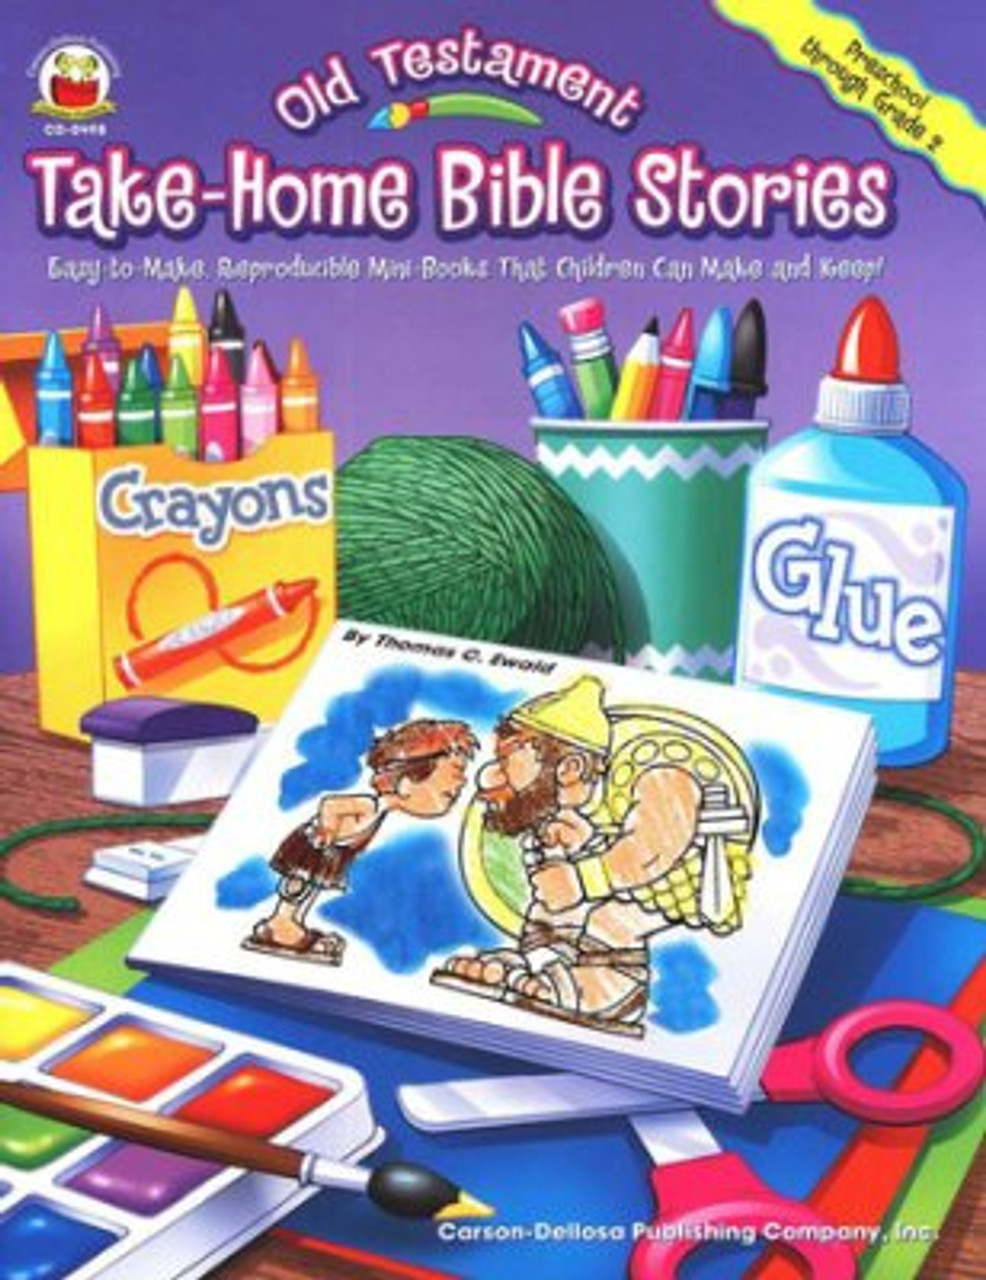 Old Testament Take Home Bible Stories